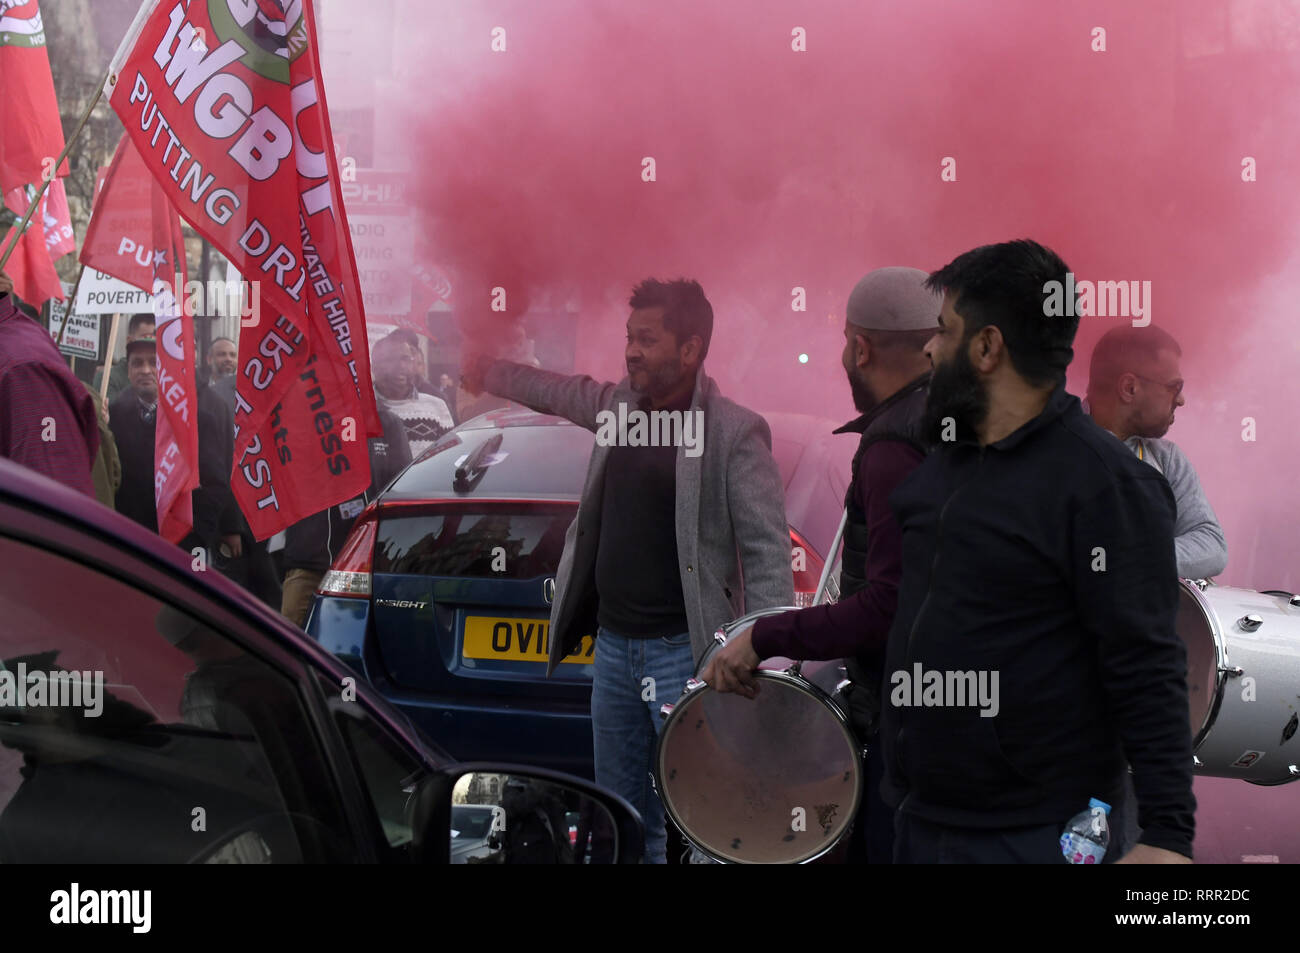 London, Greater London, UK. 25th Feb, 2019. Minicab drivers seen under coloured gas during the protest.Minicab drivers blocked Parliament Square in protest over changes to the congestion charge. Drivers are against congestion charges introduced by Mayor Sadiq Khan. TFL said the measure is necessary to reduce London's air pollution. Credit: Andres Pantoja/SOPA Images/ZUMA Wire/Alamy Live News - Stock Image